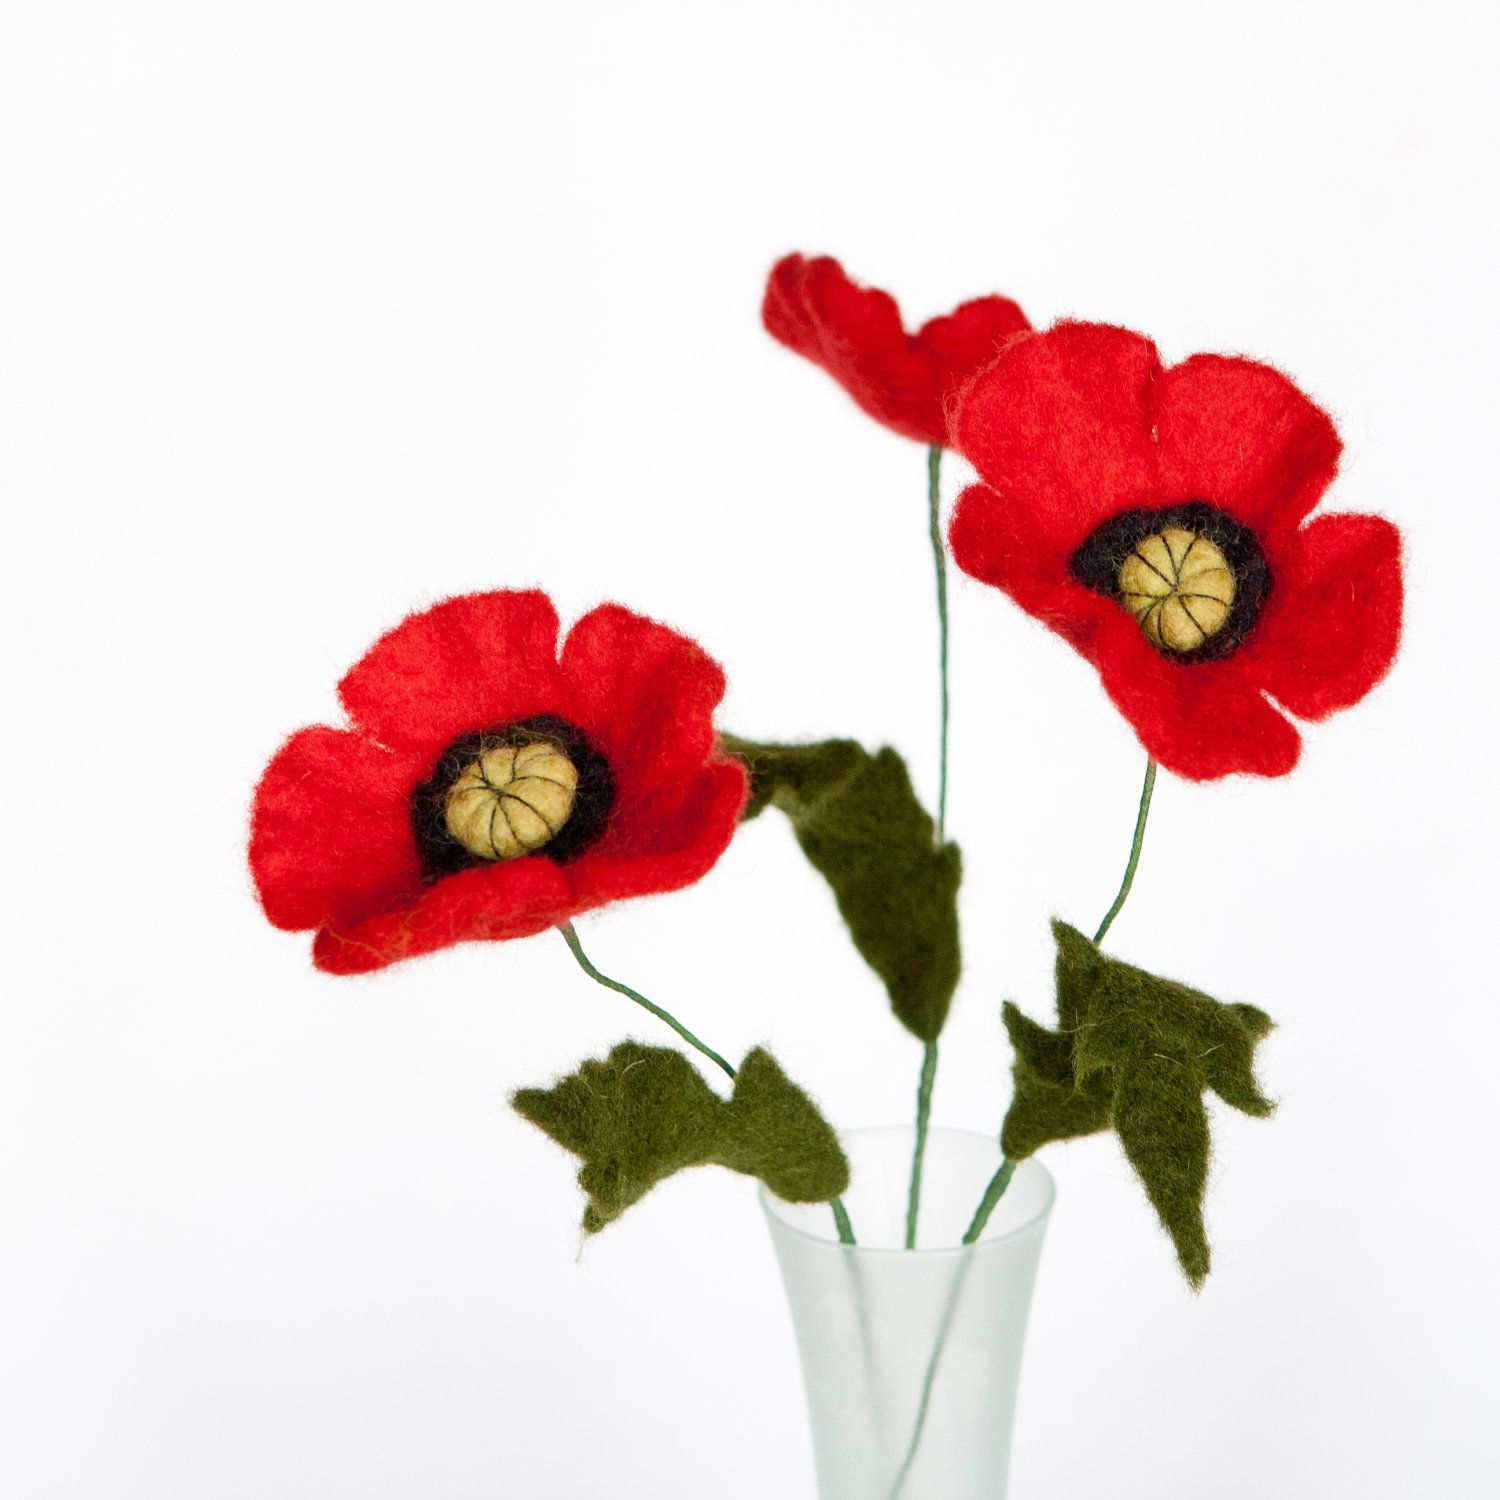 Wet Felted Woodland Eco Friendly Flower Bouquet Red Poppies Fall ...